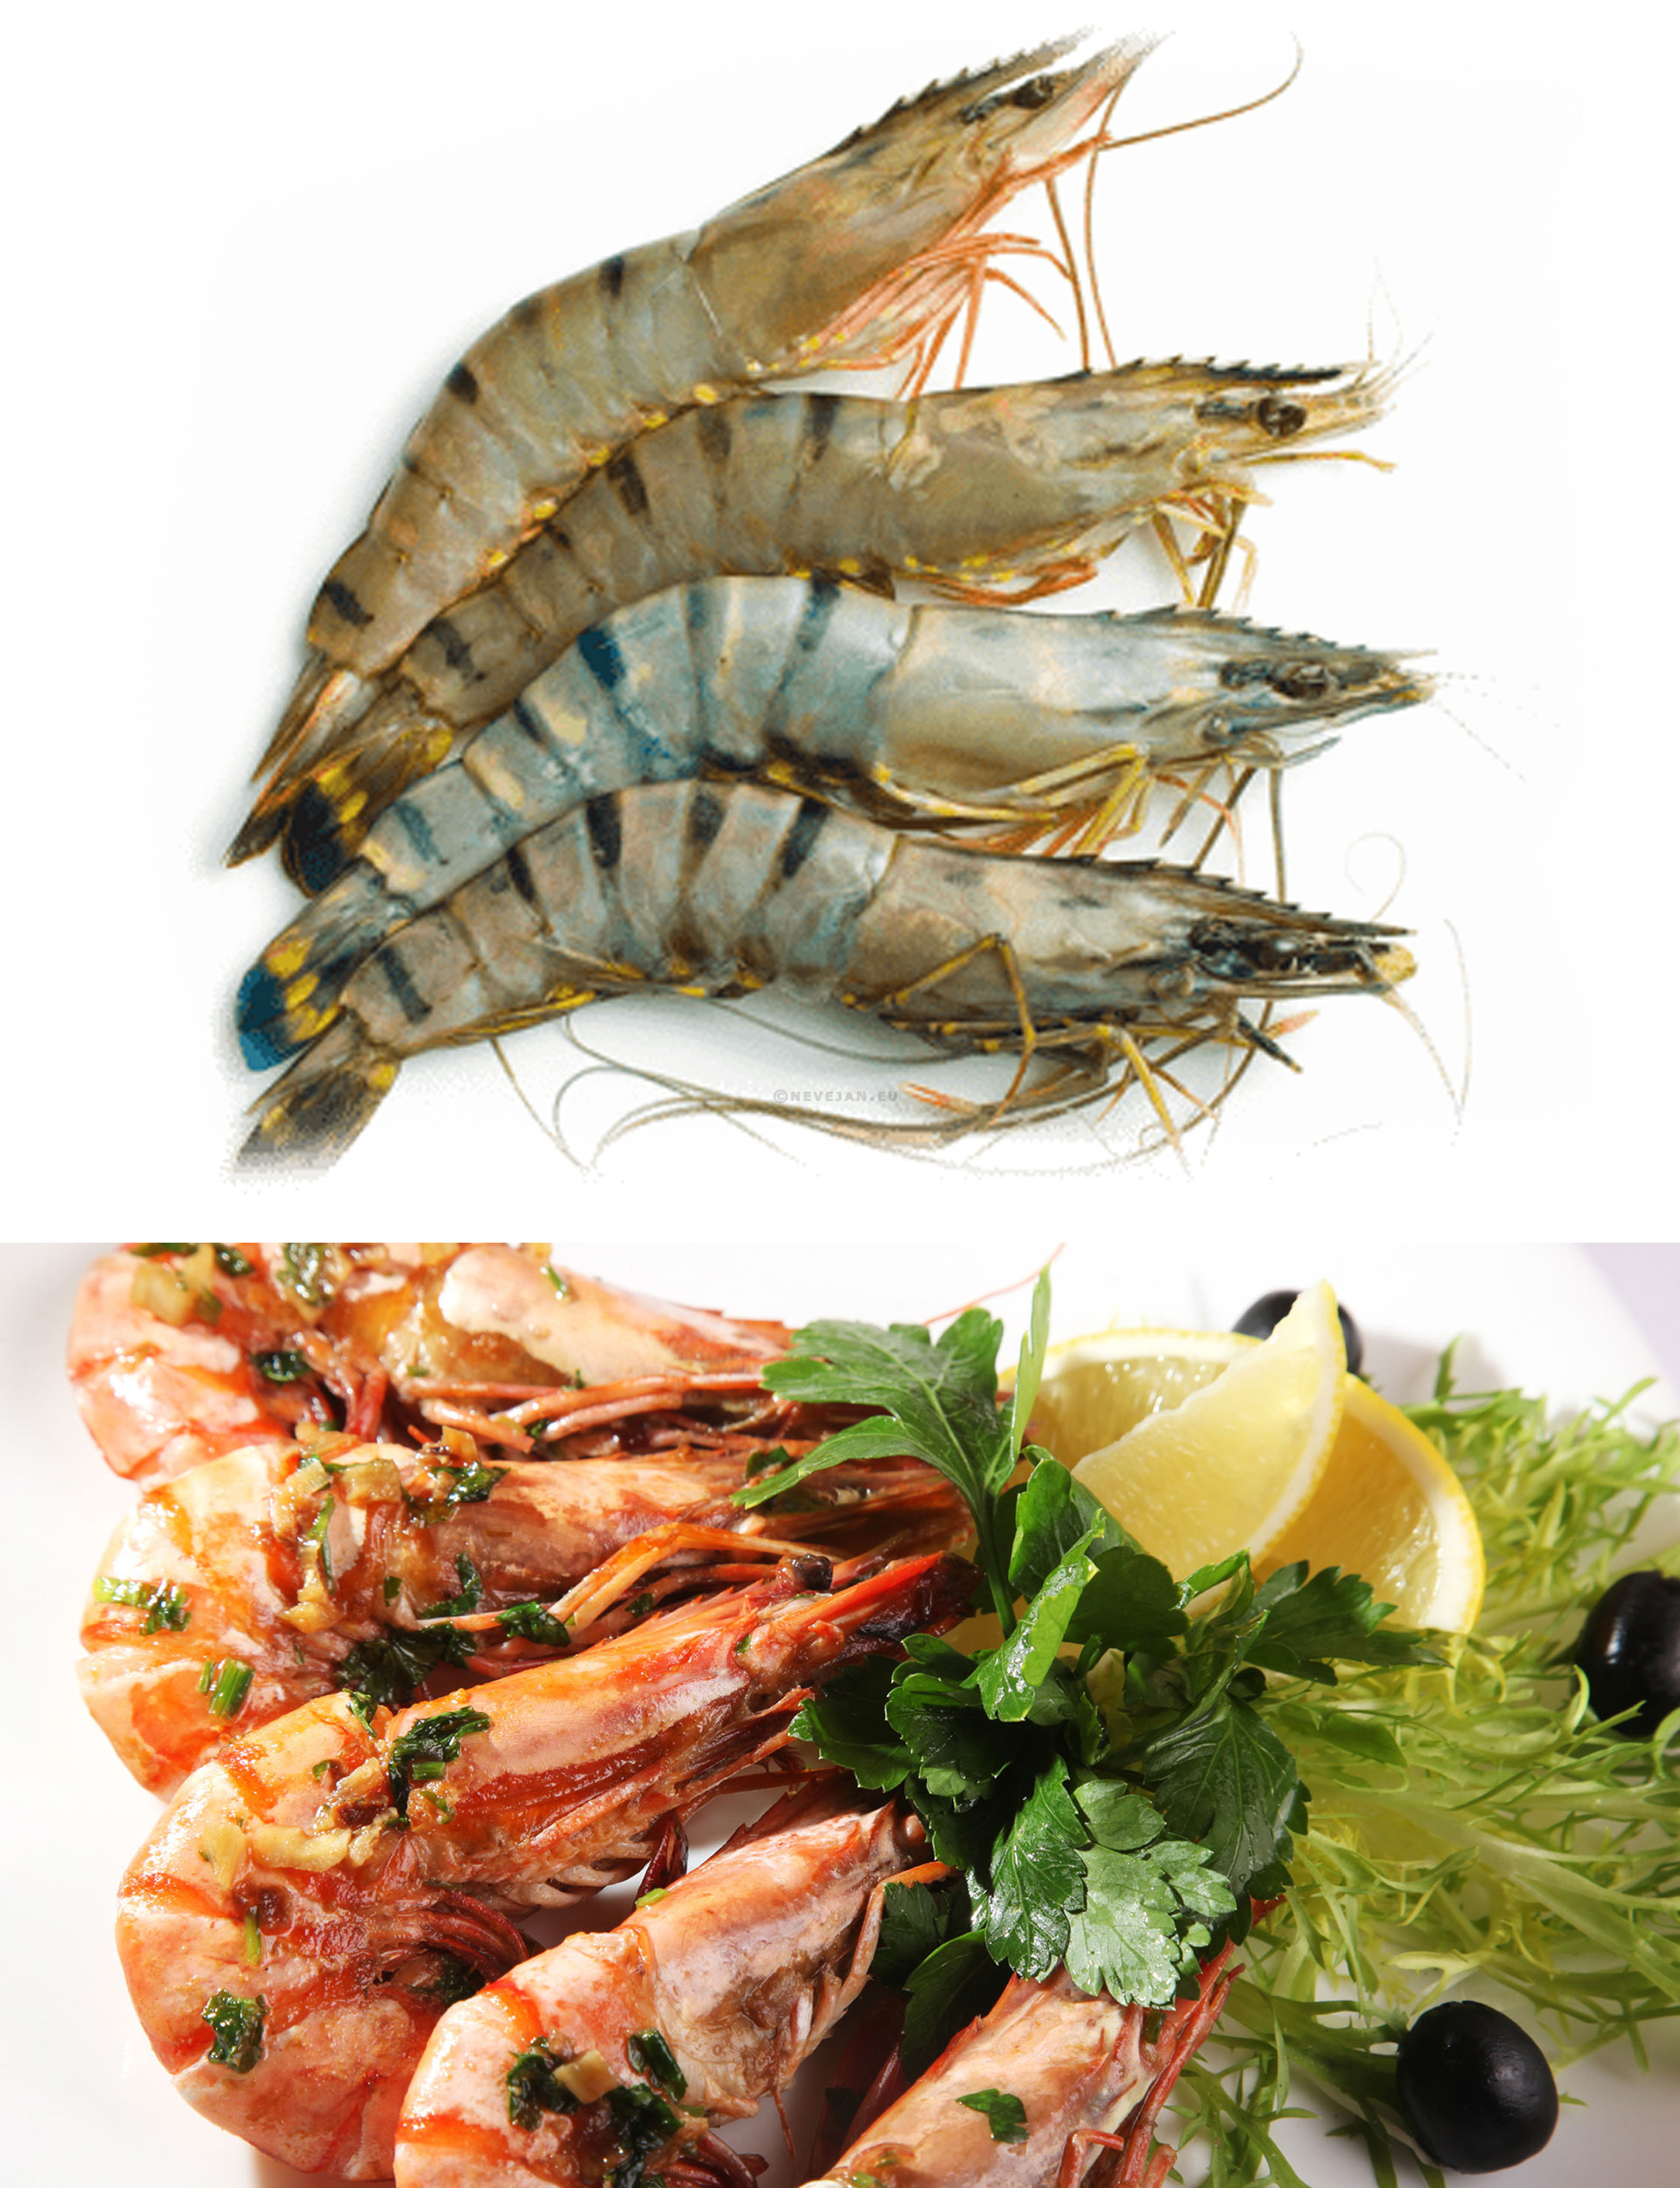 Gamba 8/12 1x1kg BT HOSO giant shrimp with head